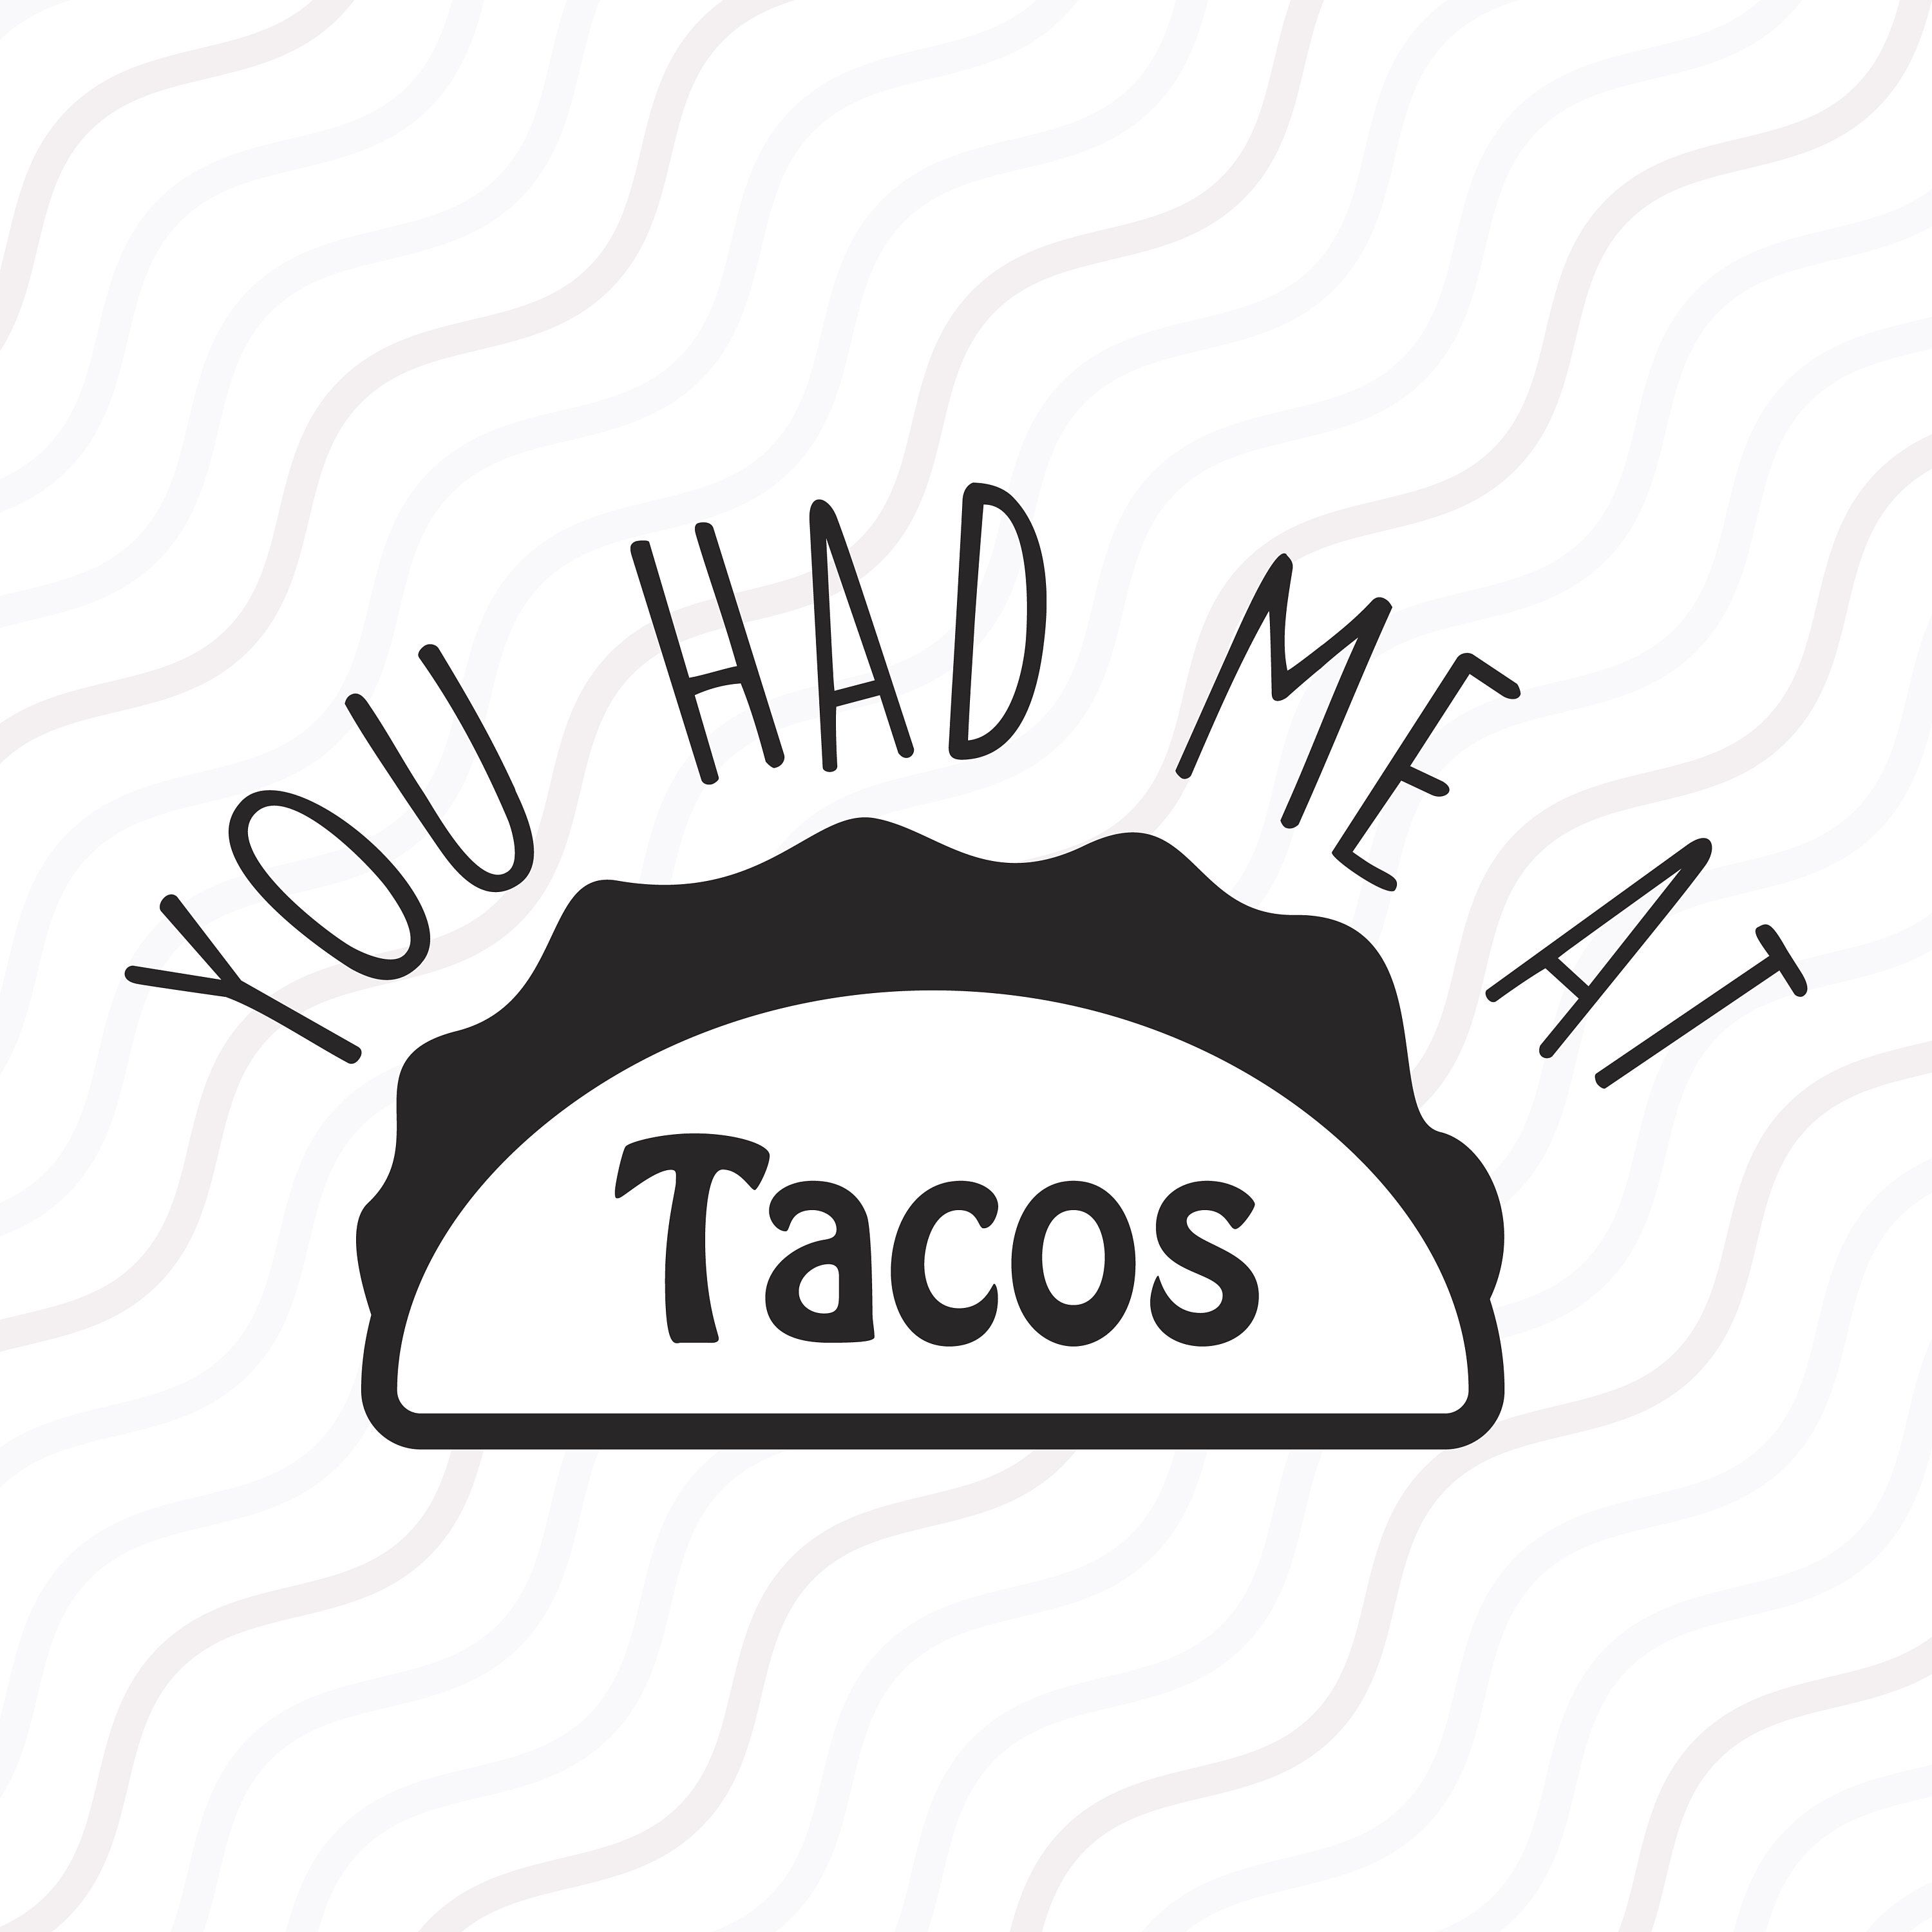 3000x3000 You Had Me At Tacos Svg, Taco Svg, Taco Lover Svg Cut Table Design